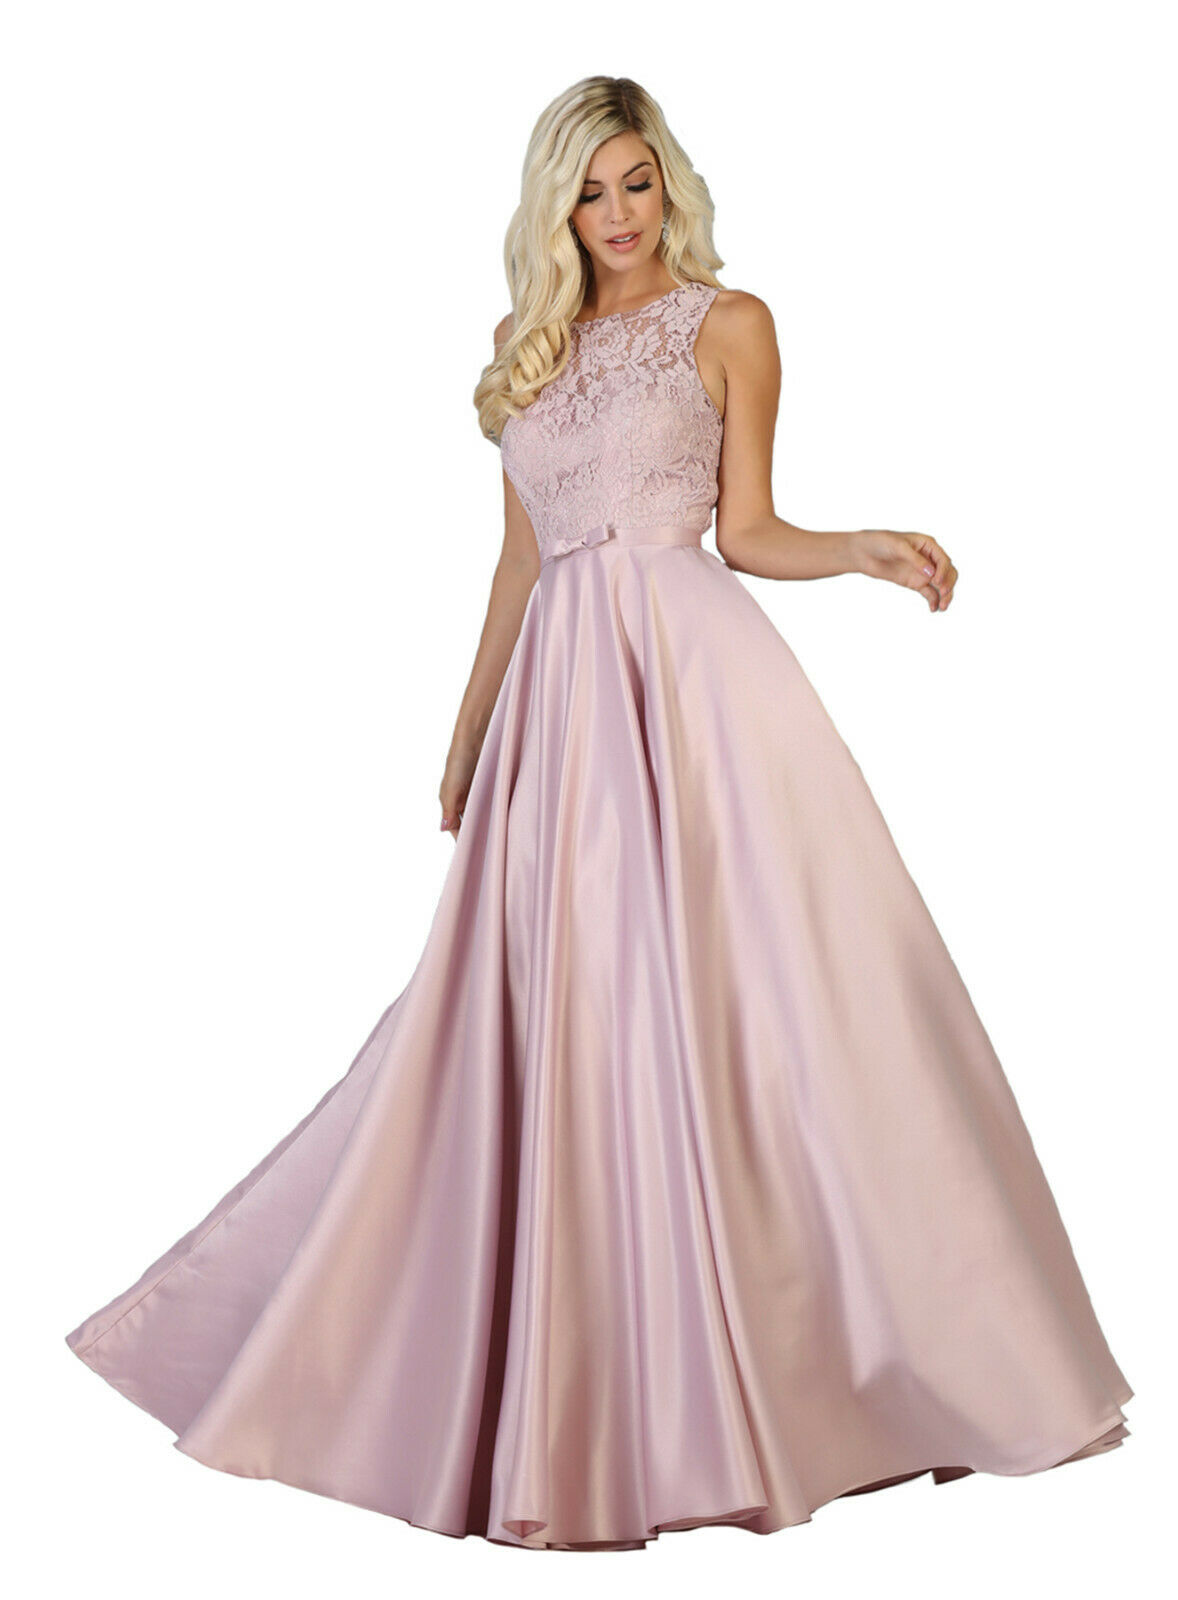 SWEET 16 A-LINED EVENING GOWN SPECIAL OCCASION FORMAL DANCE PROM DRESS PAGEANT